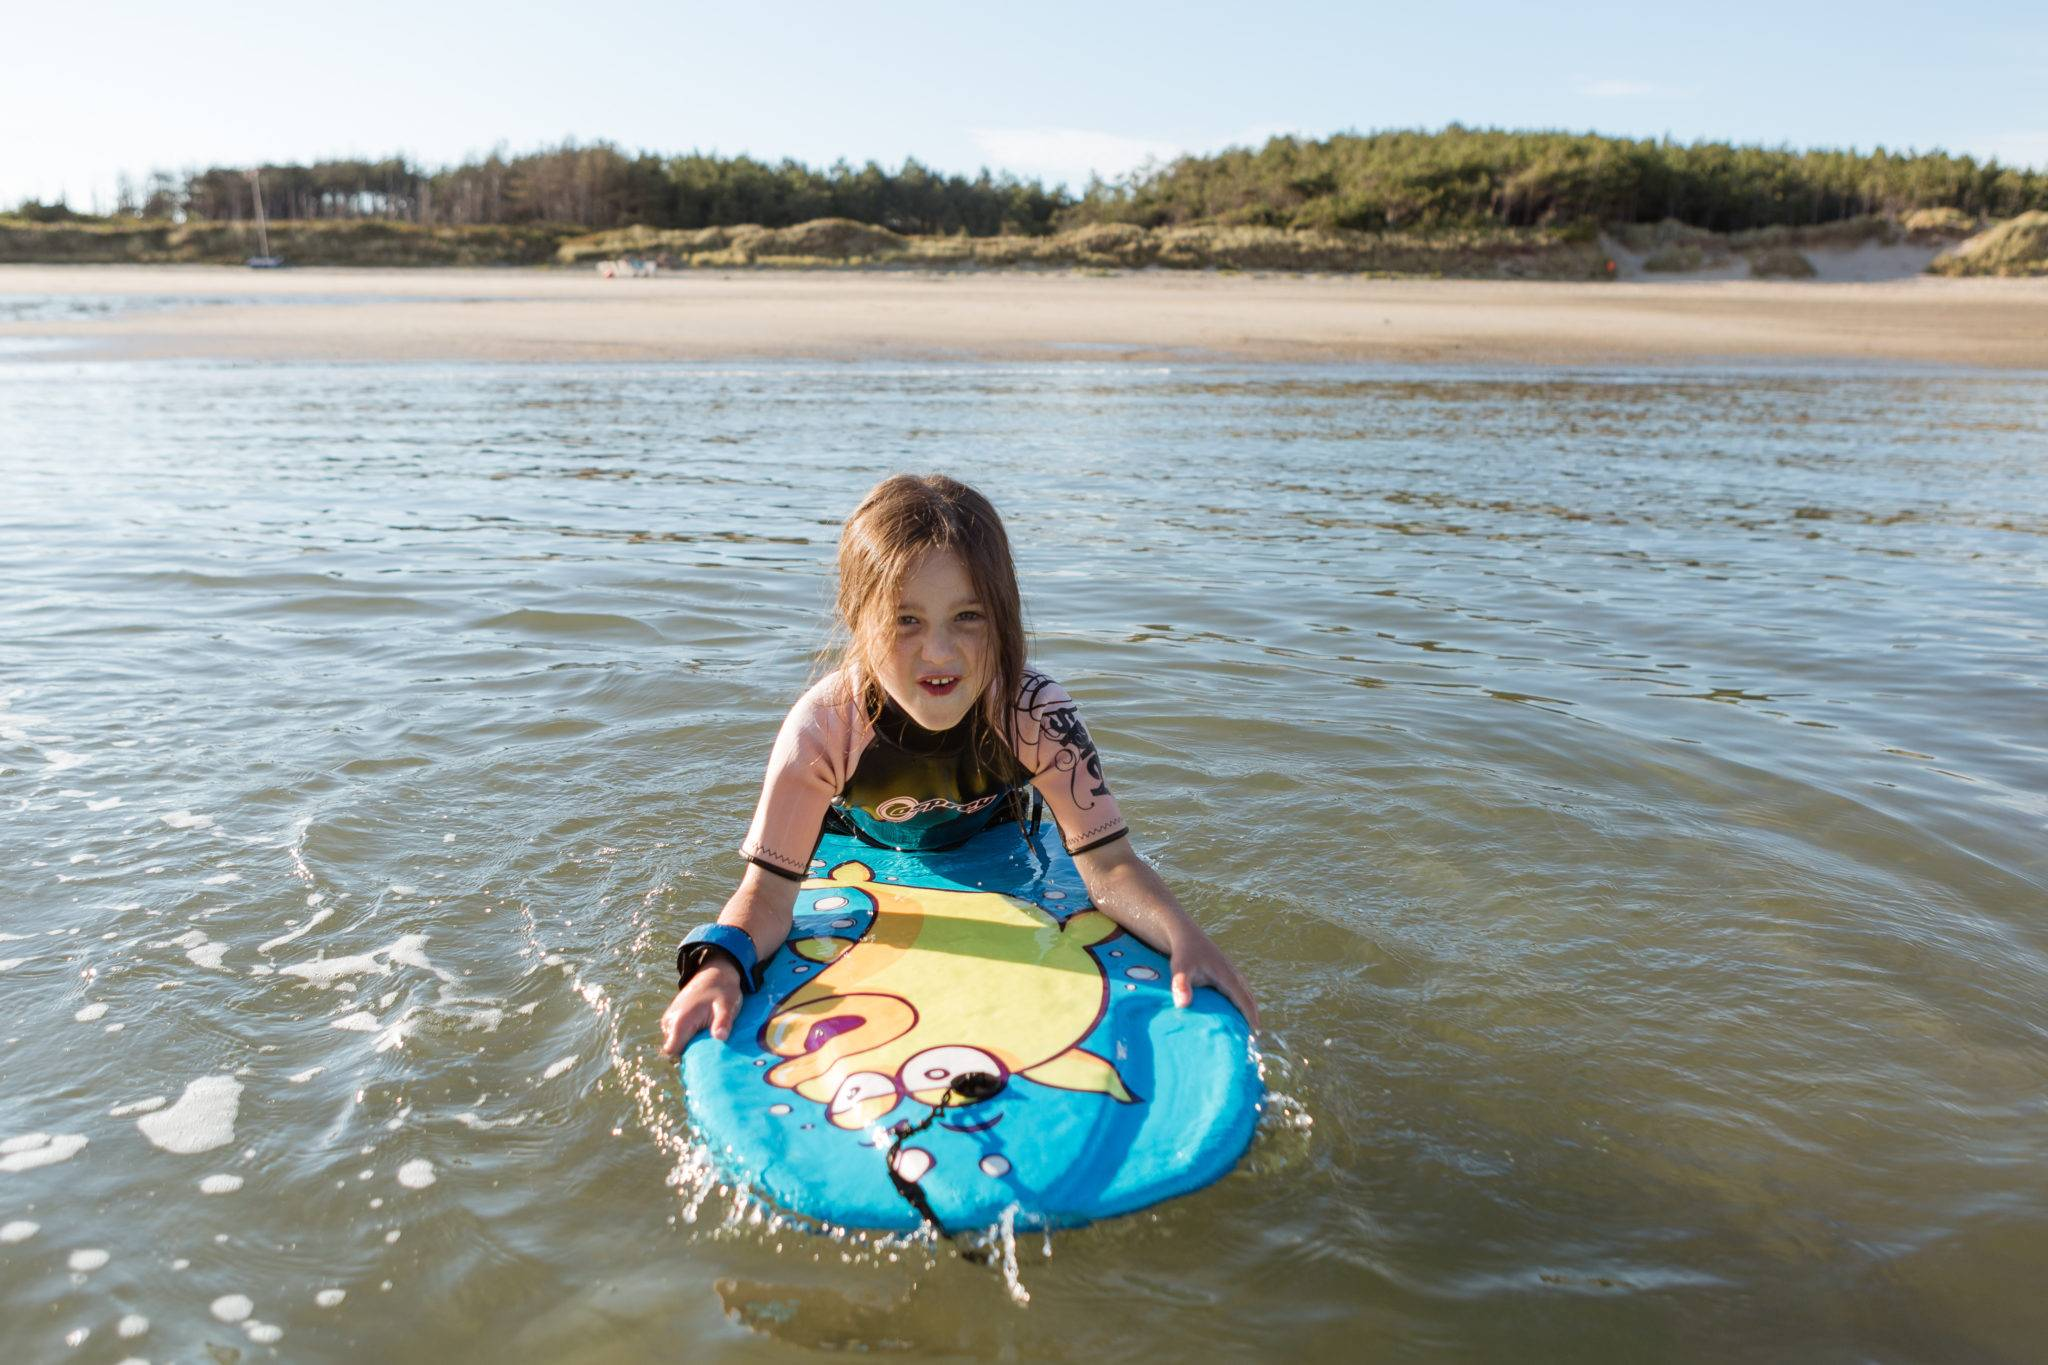 silver-bay-holiday-village-anglesey-busy-bayers-bodyboard-fun-girl-ocean-beach